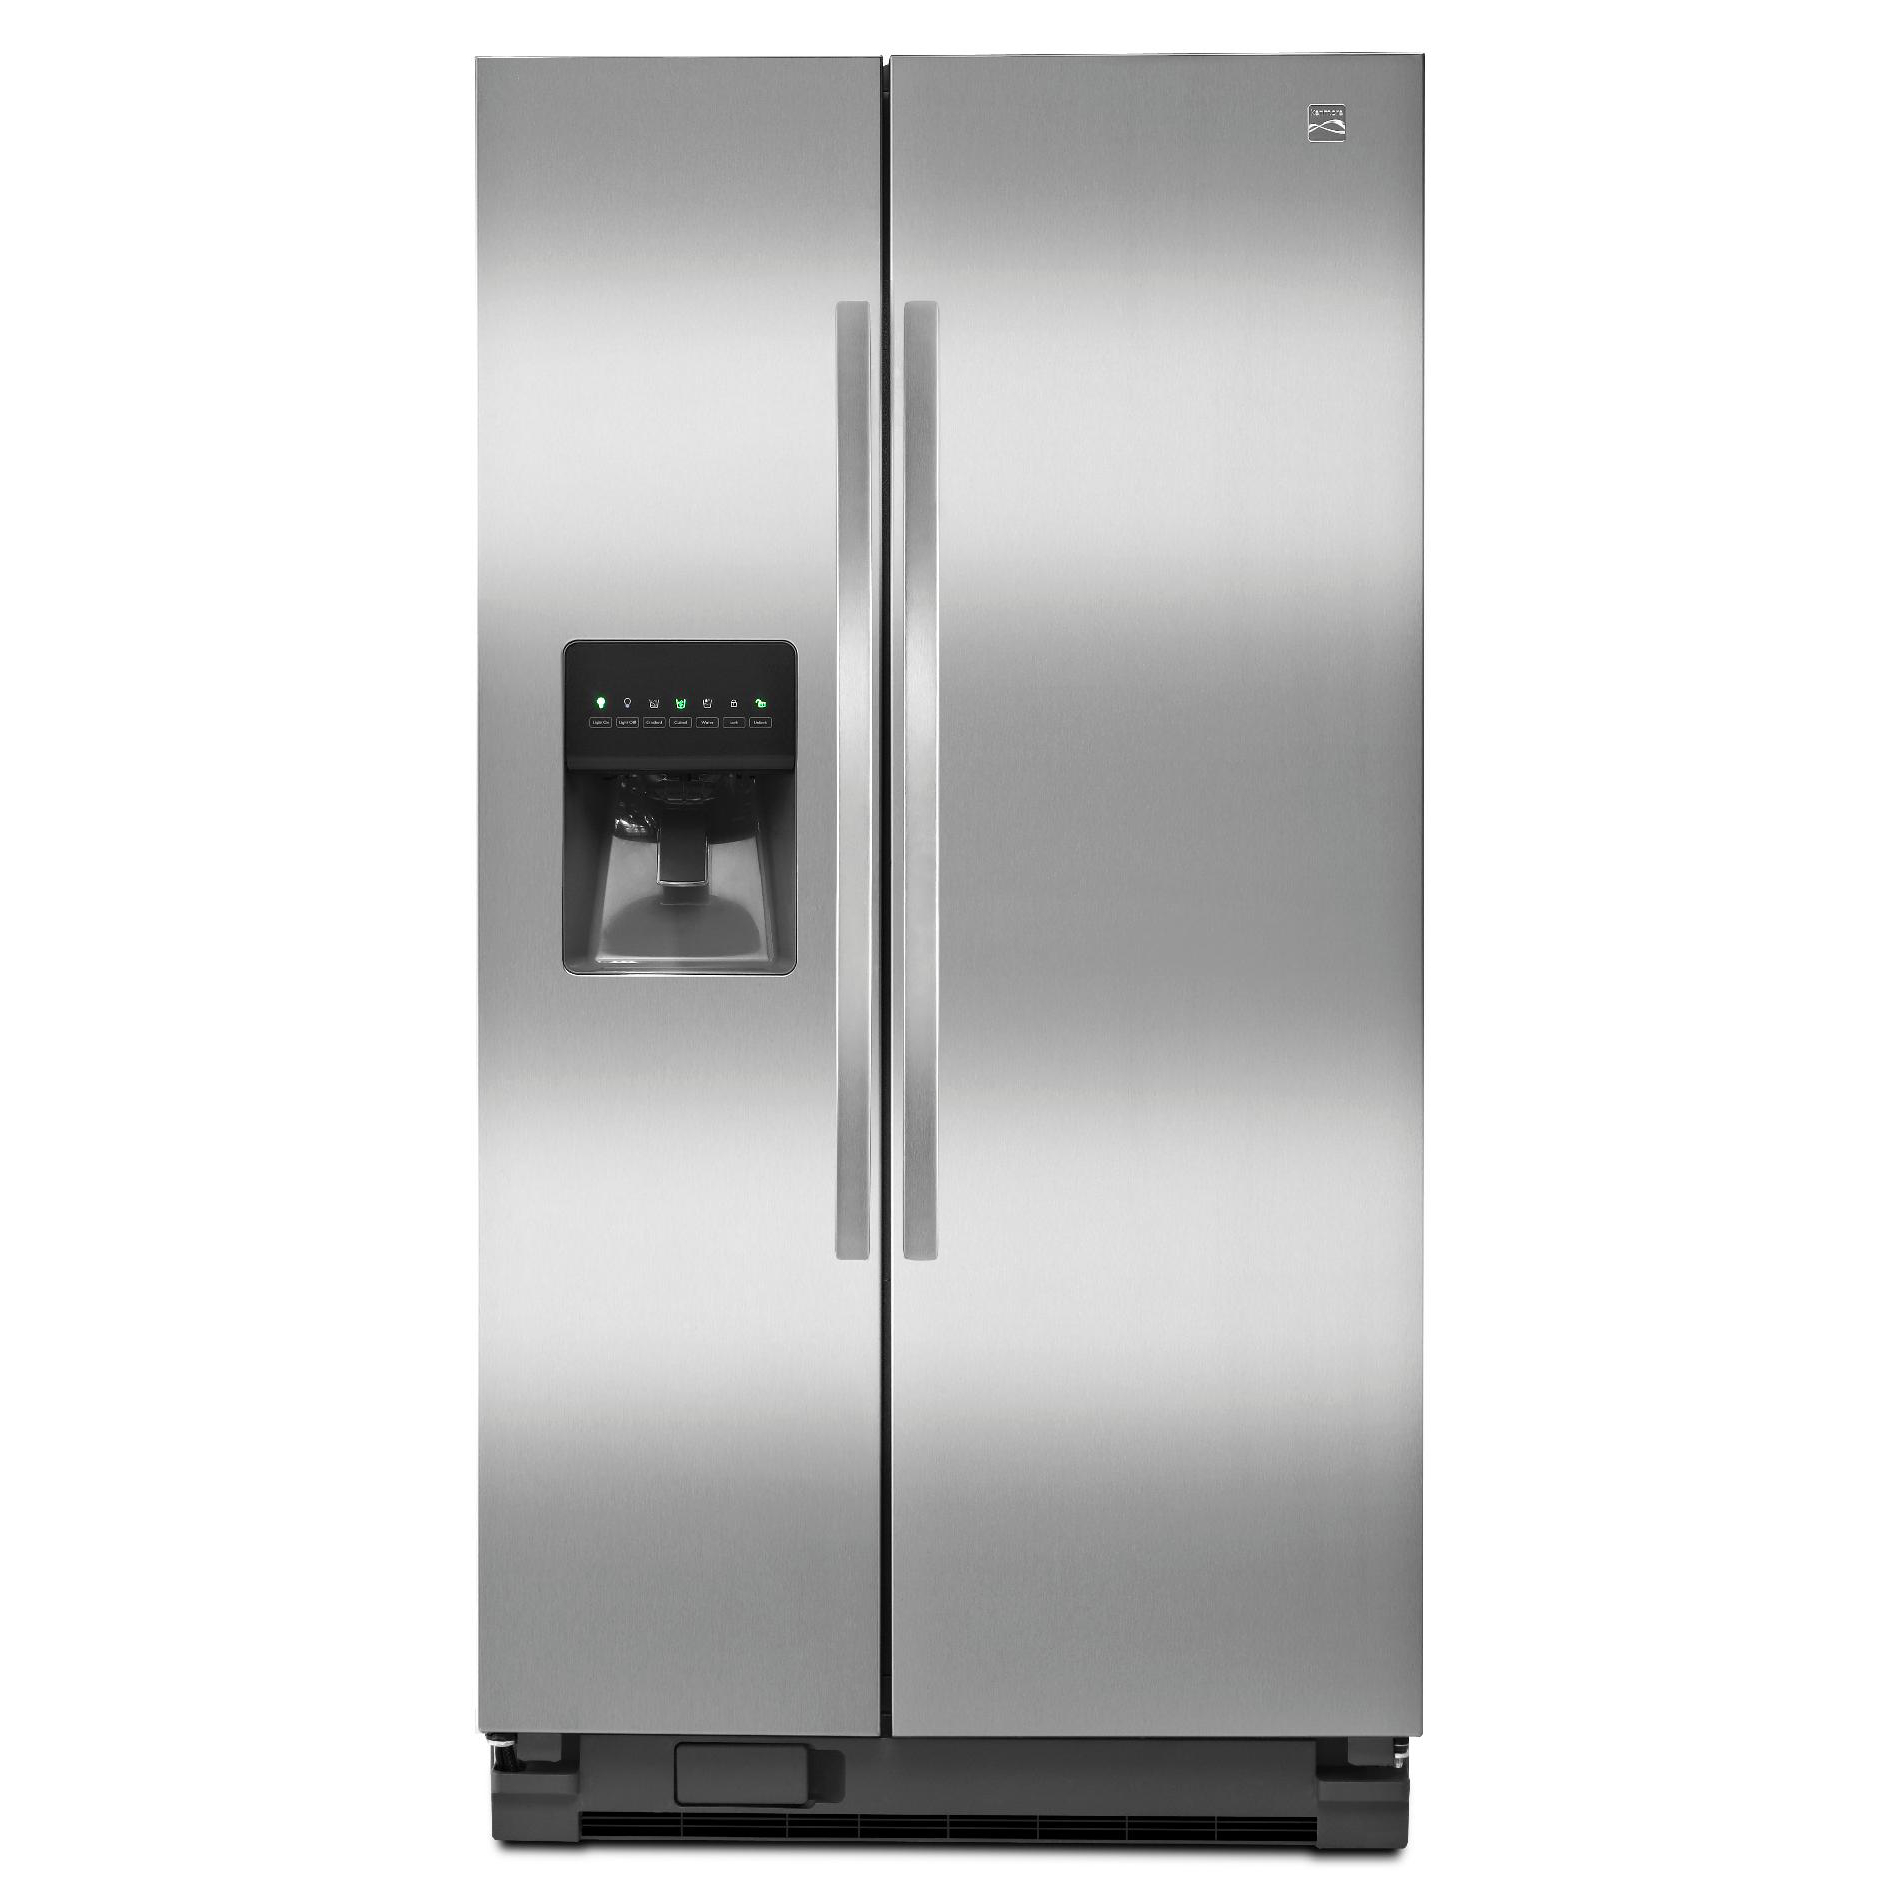 51123-25-cu-ft-Side-by-Side-Refrigerator%E2%80%94Stainless-Steel